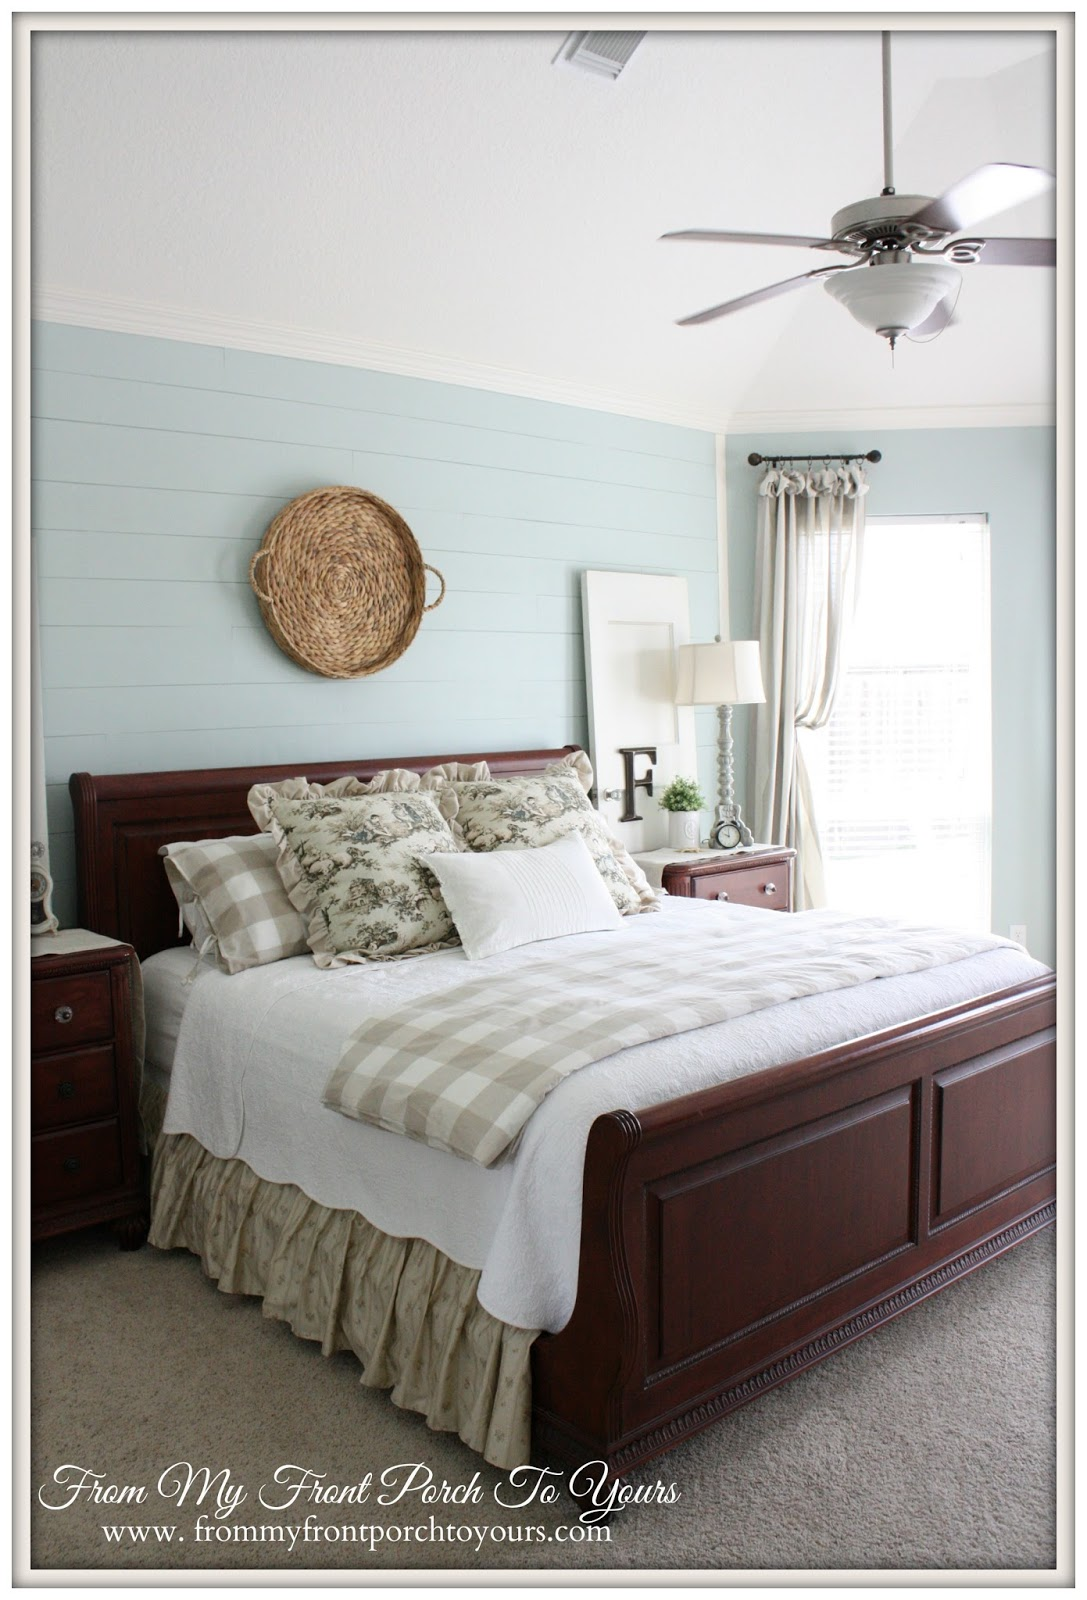 From My Front Porch To Yours- French Farmhouse Bedroom Source List